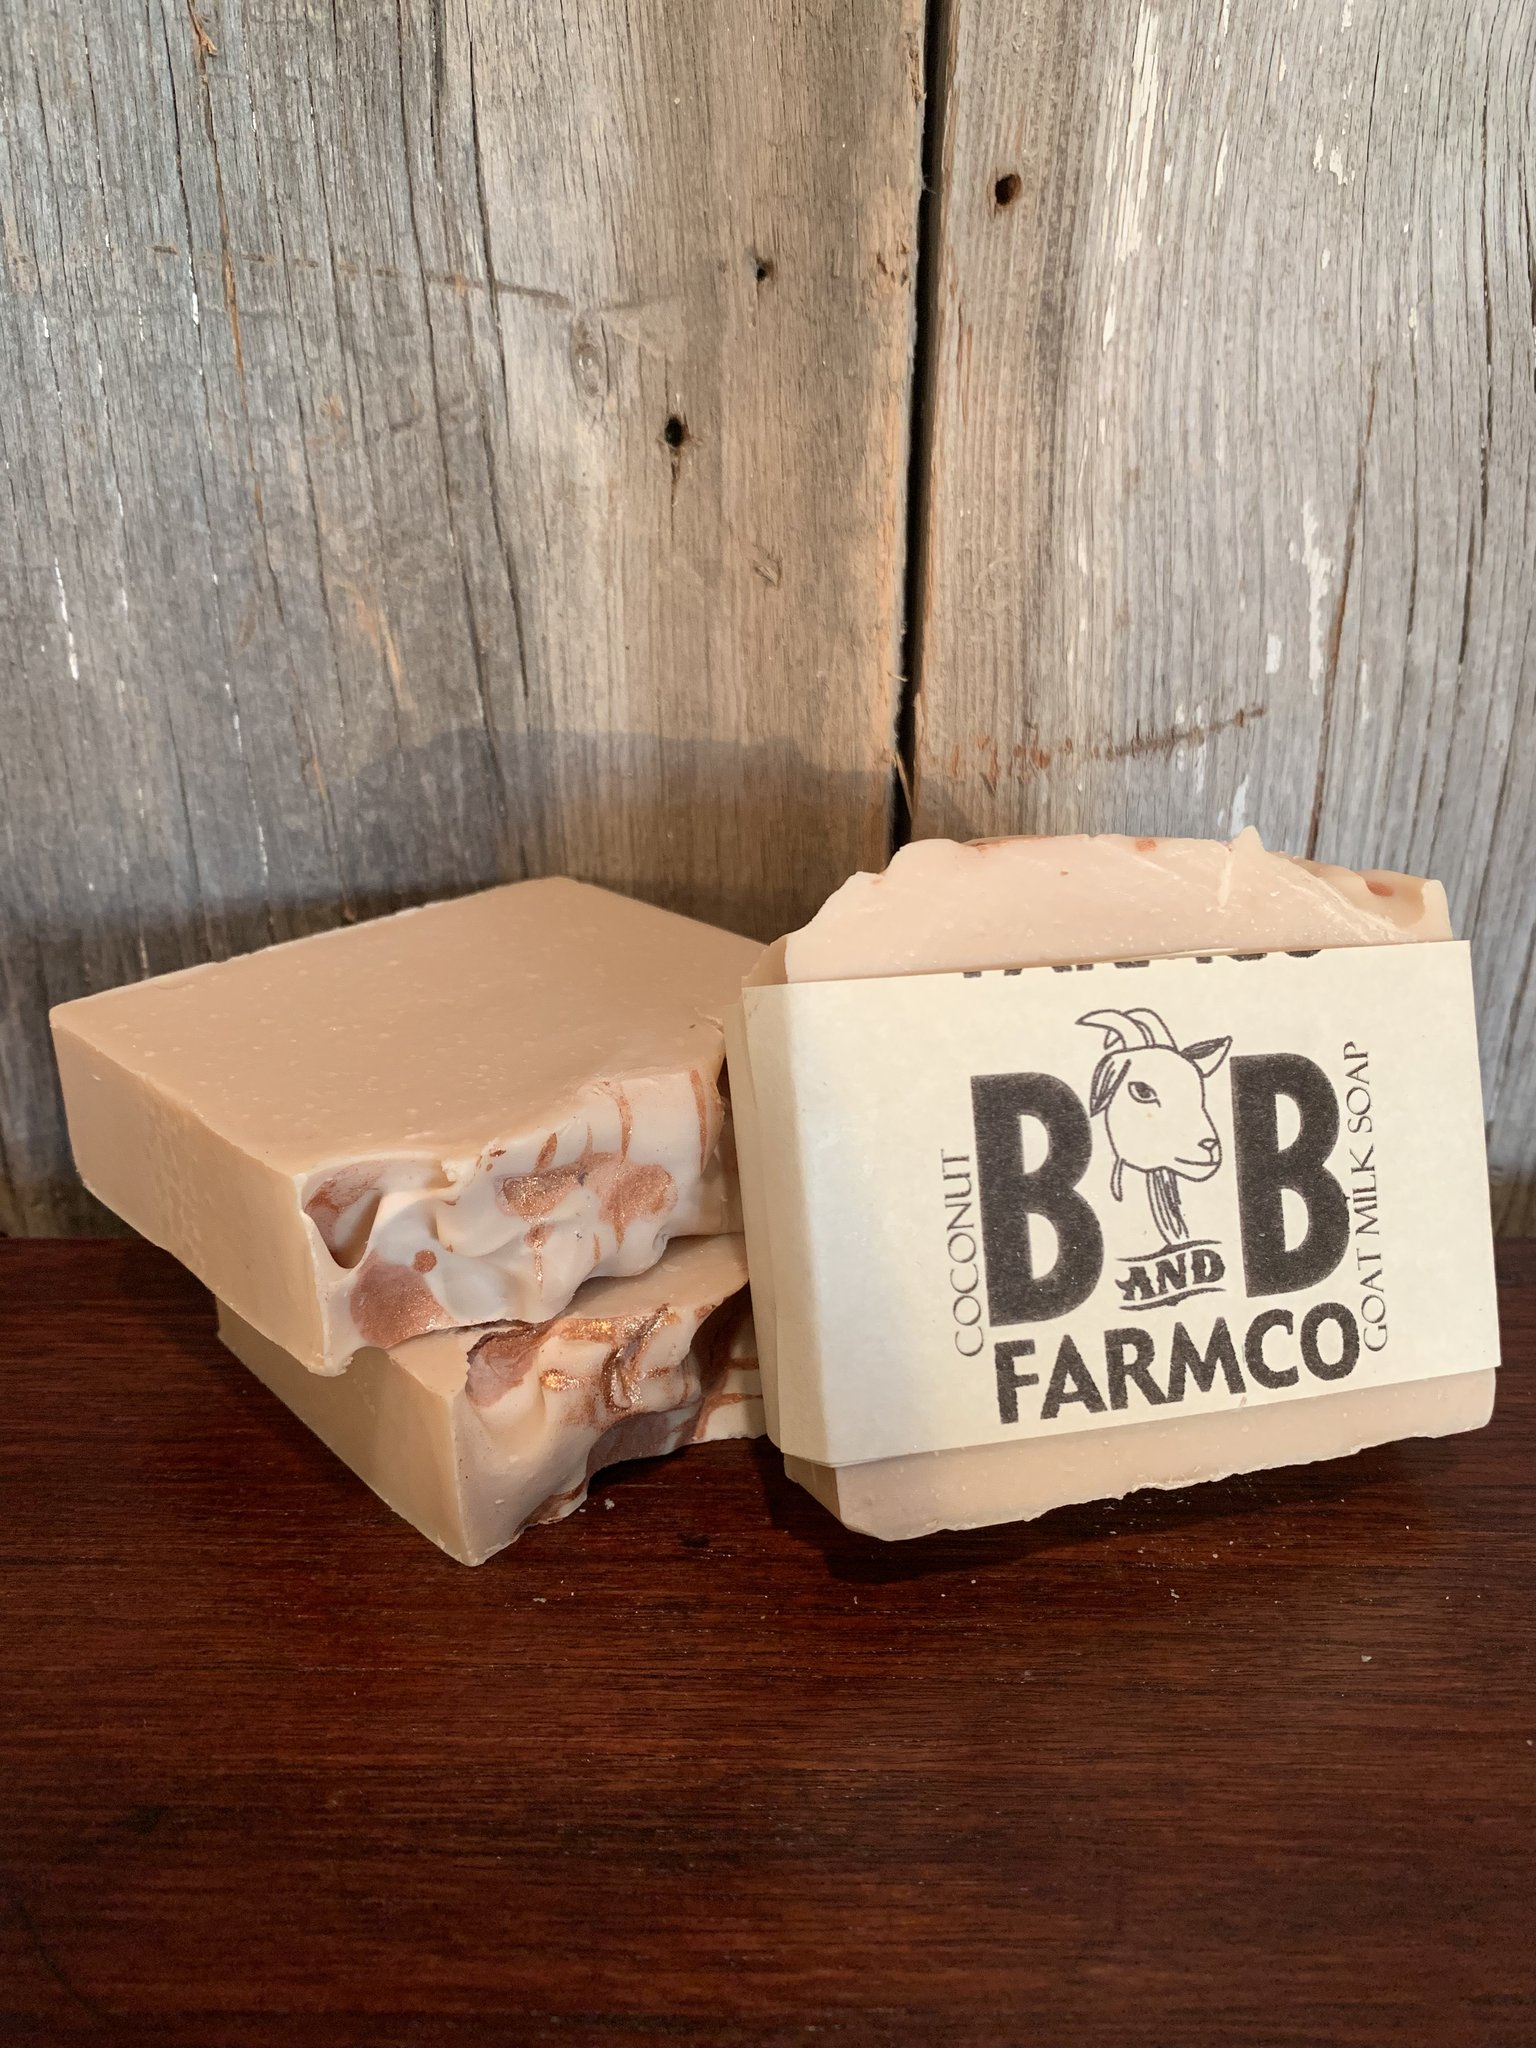 Coconut - B and B Farm Co - Natural Goat's Milk Bar Soap